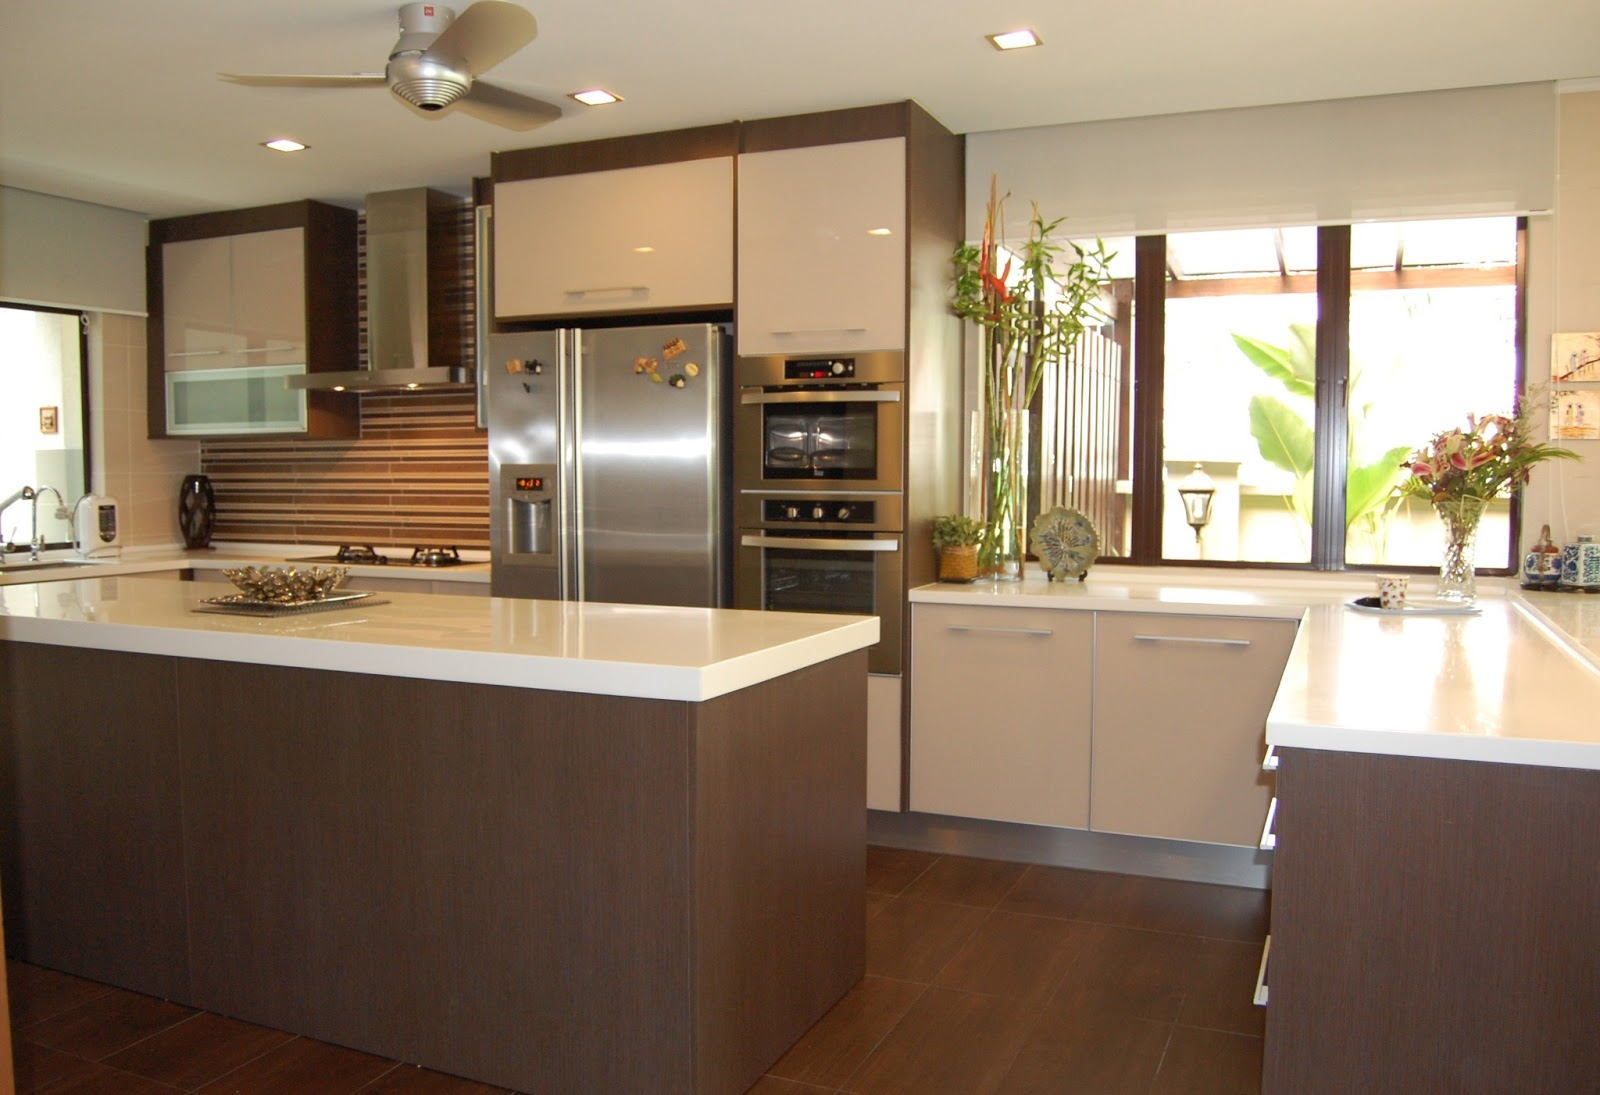 kitchen cabinet malaysia - Malaysia Interior Design Blog